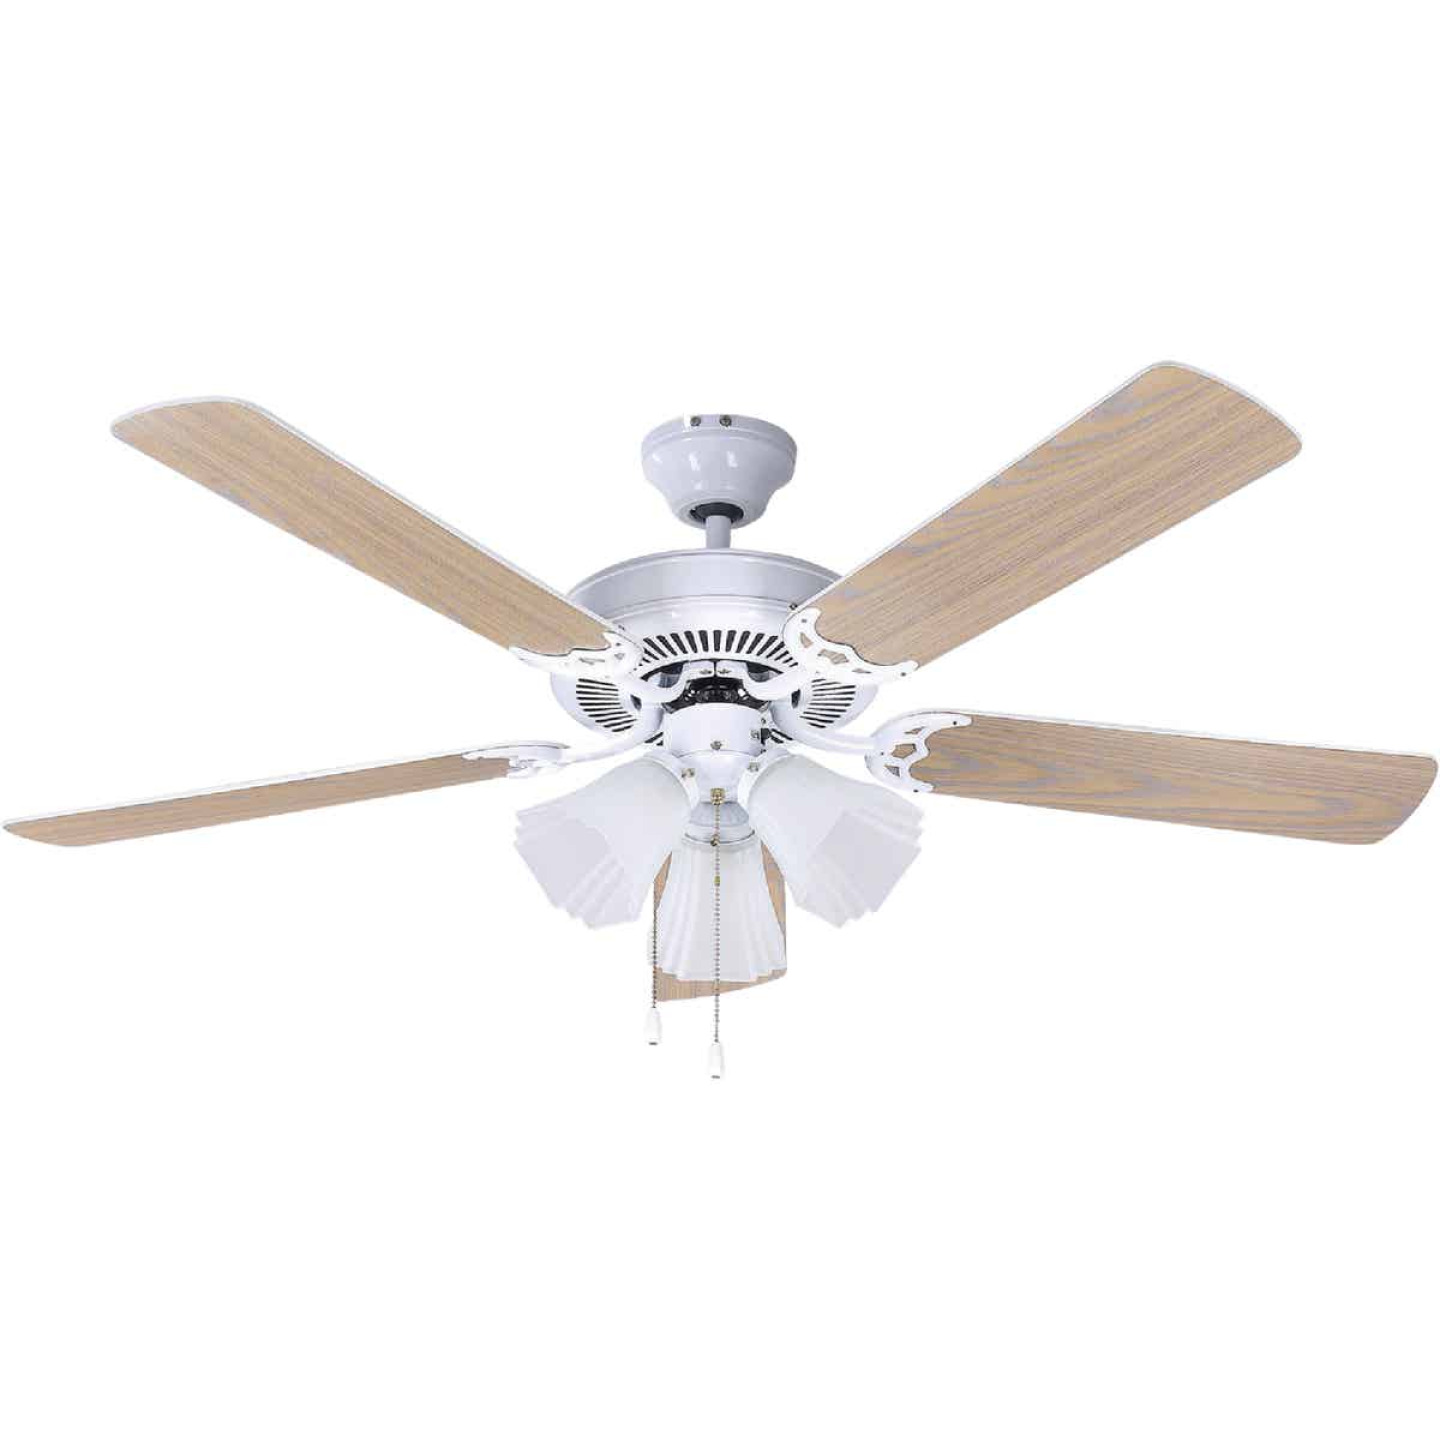 Home Impressions Sherwood 52 In. White Ceiling Fan with Light Kit Image 1